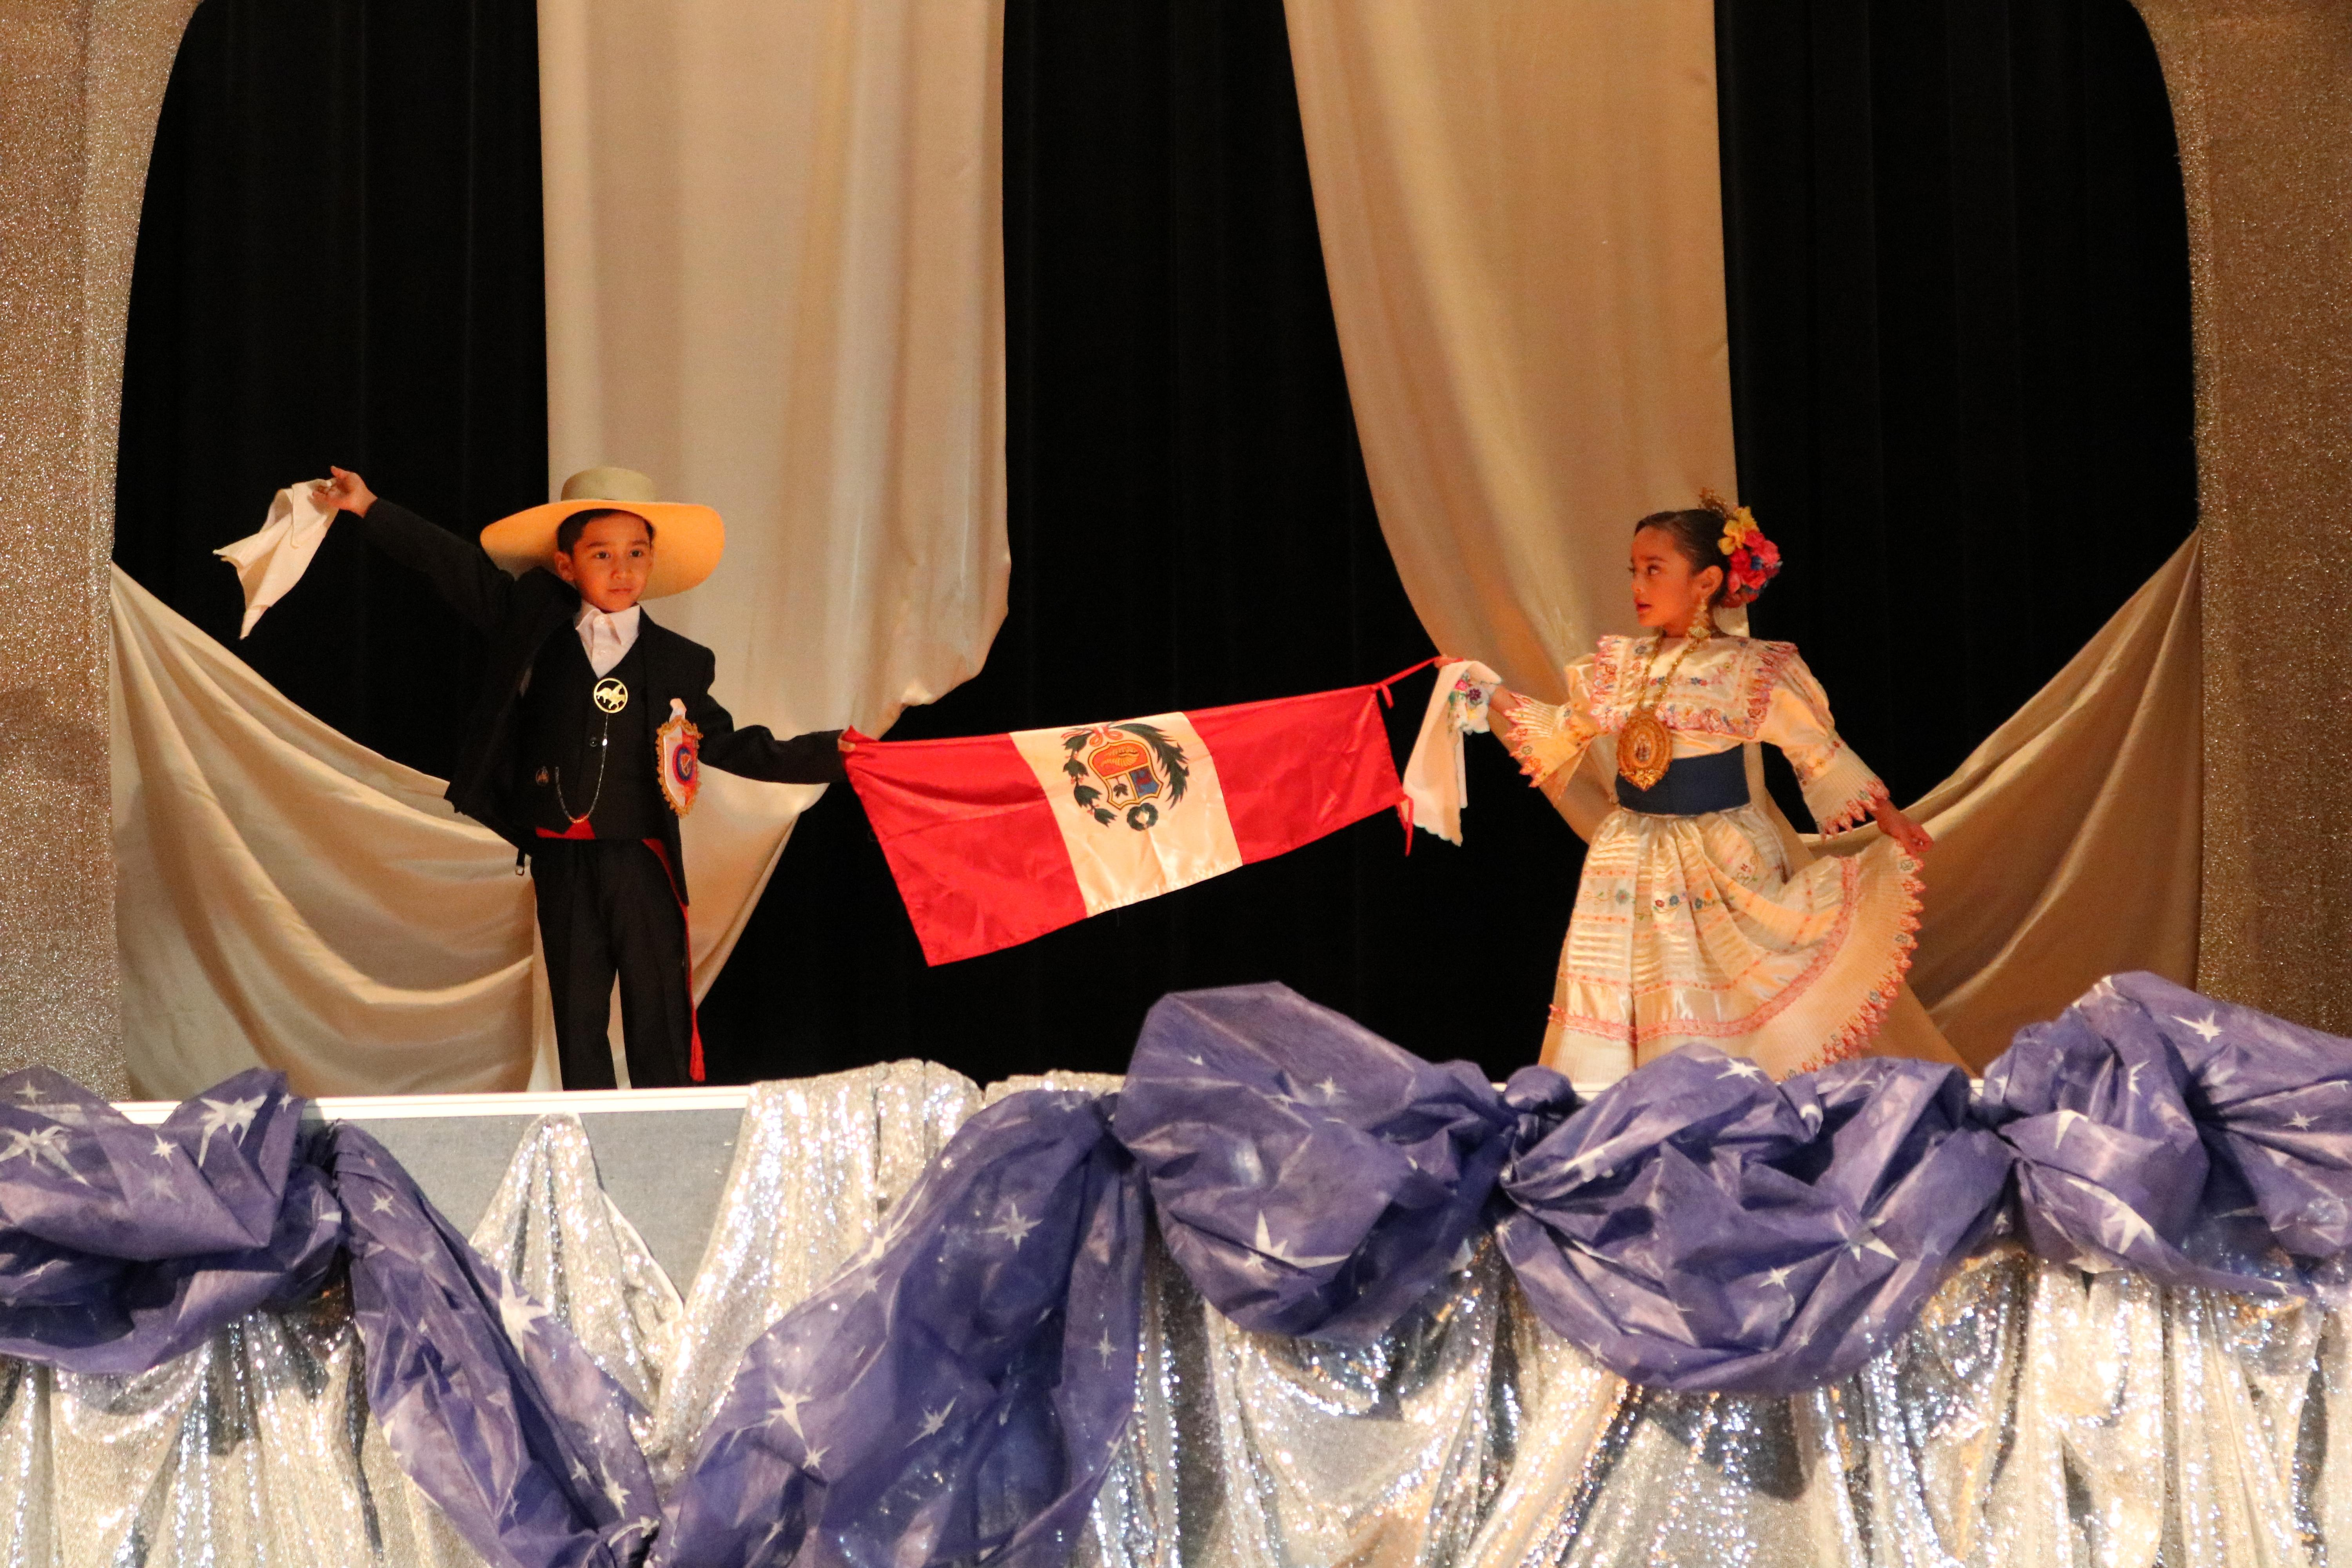 two children dressed in the Peruvian cultural dress holding the Peruvian flag